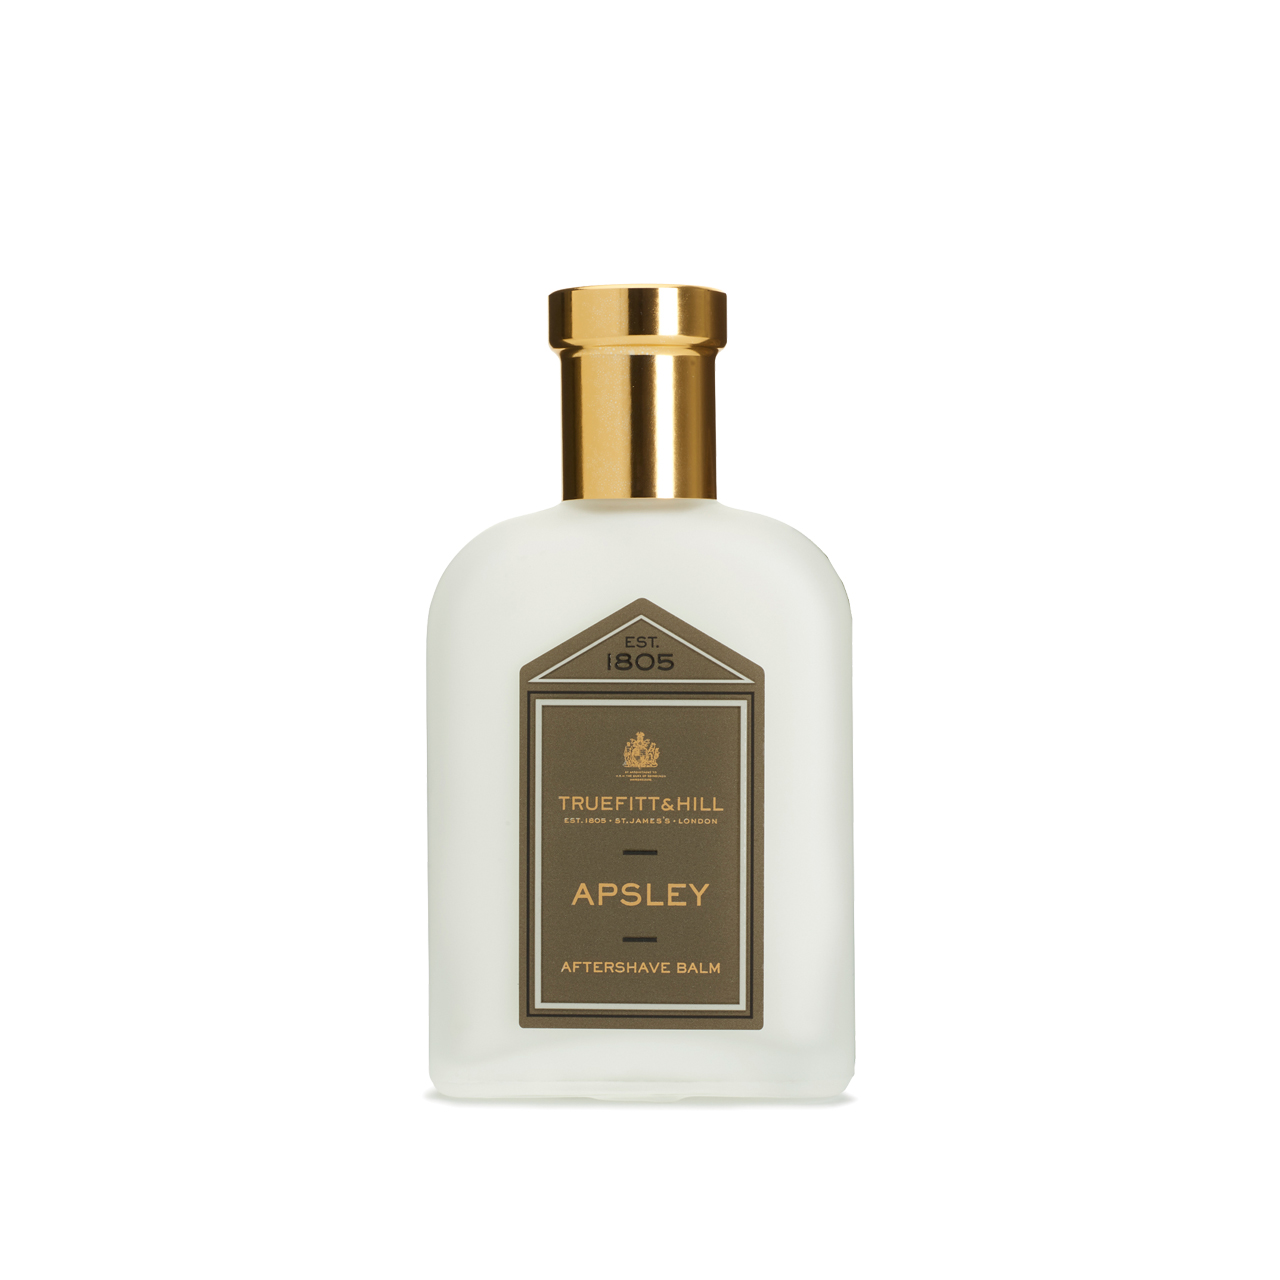 Apsley - After Shave Balm